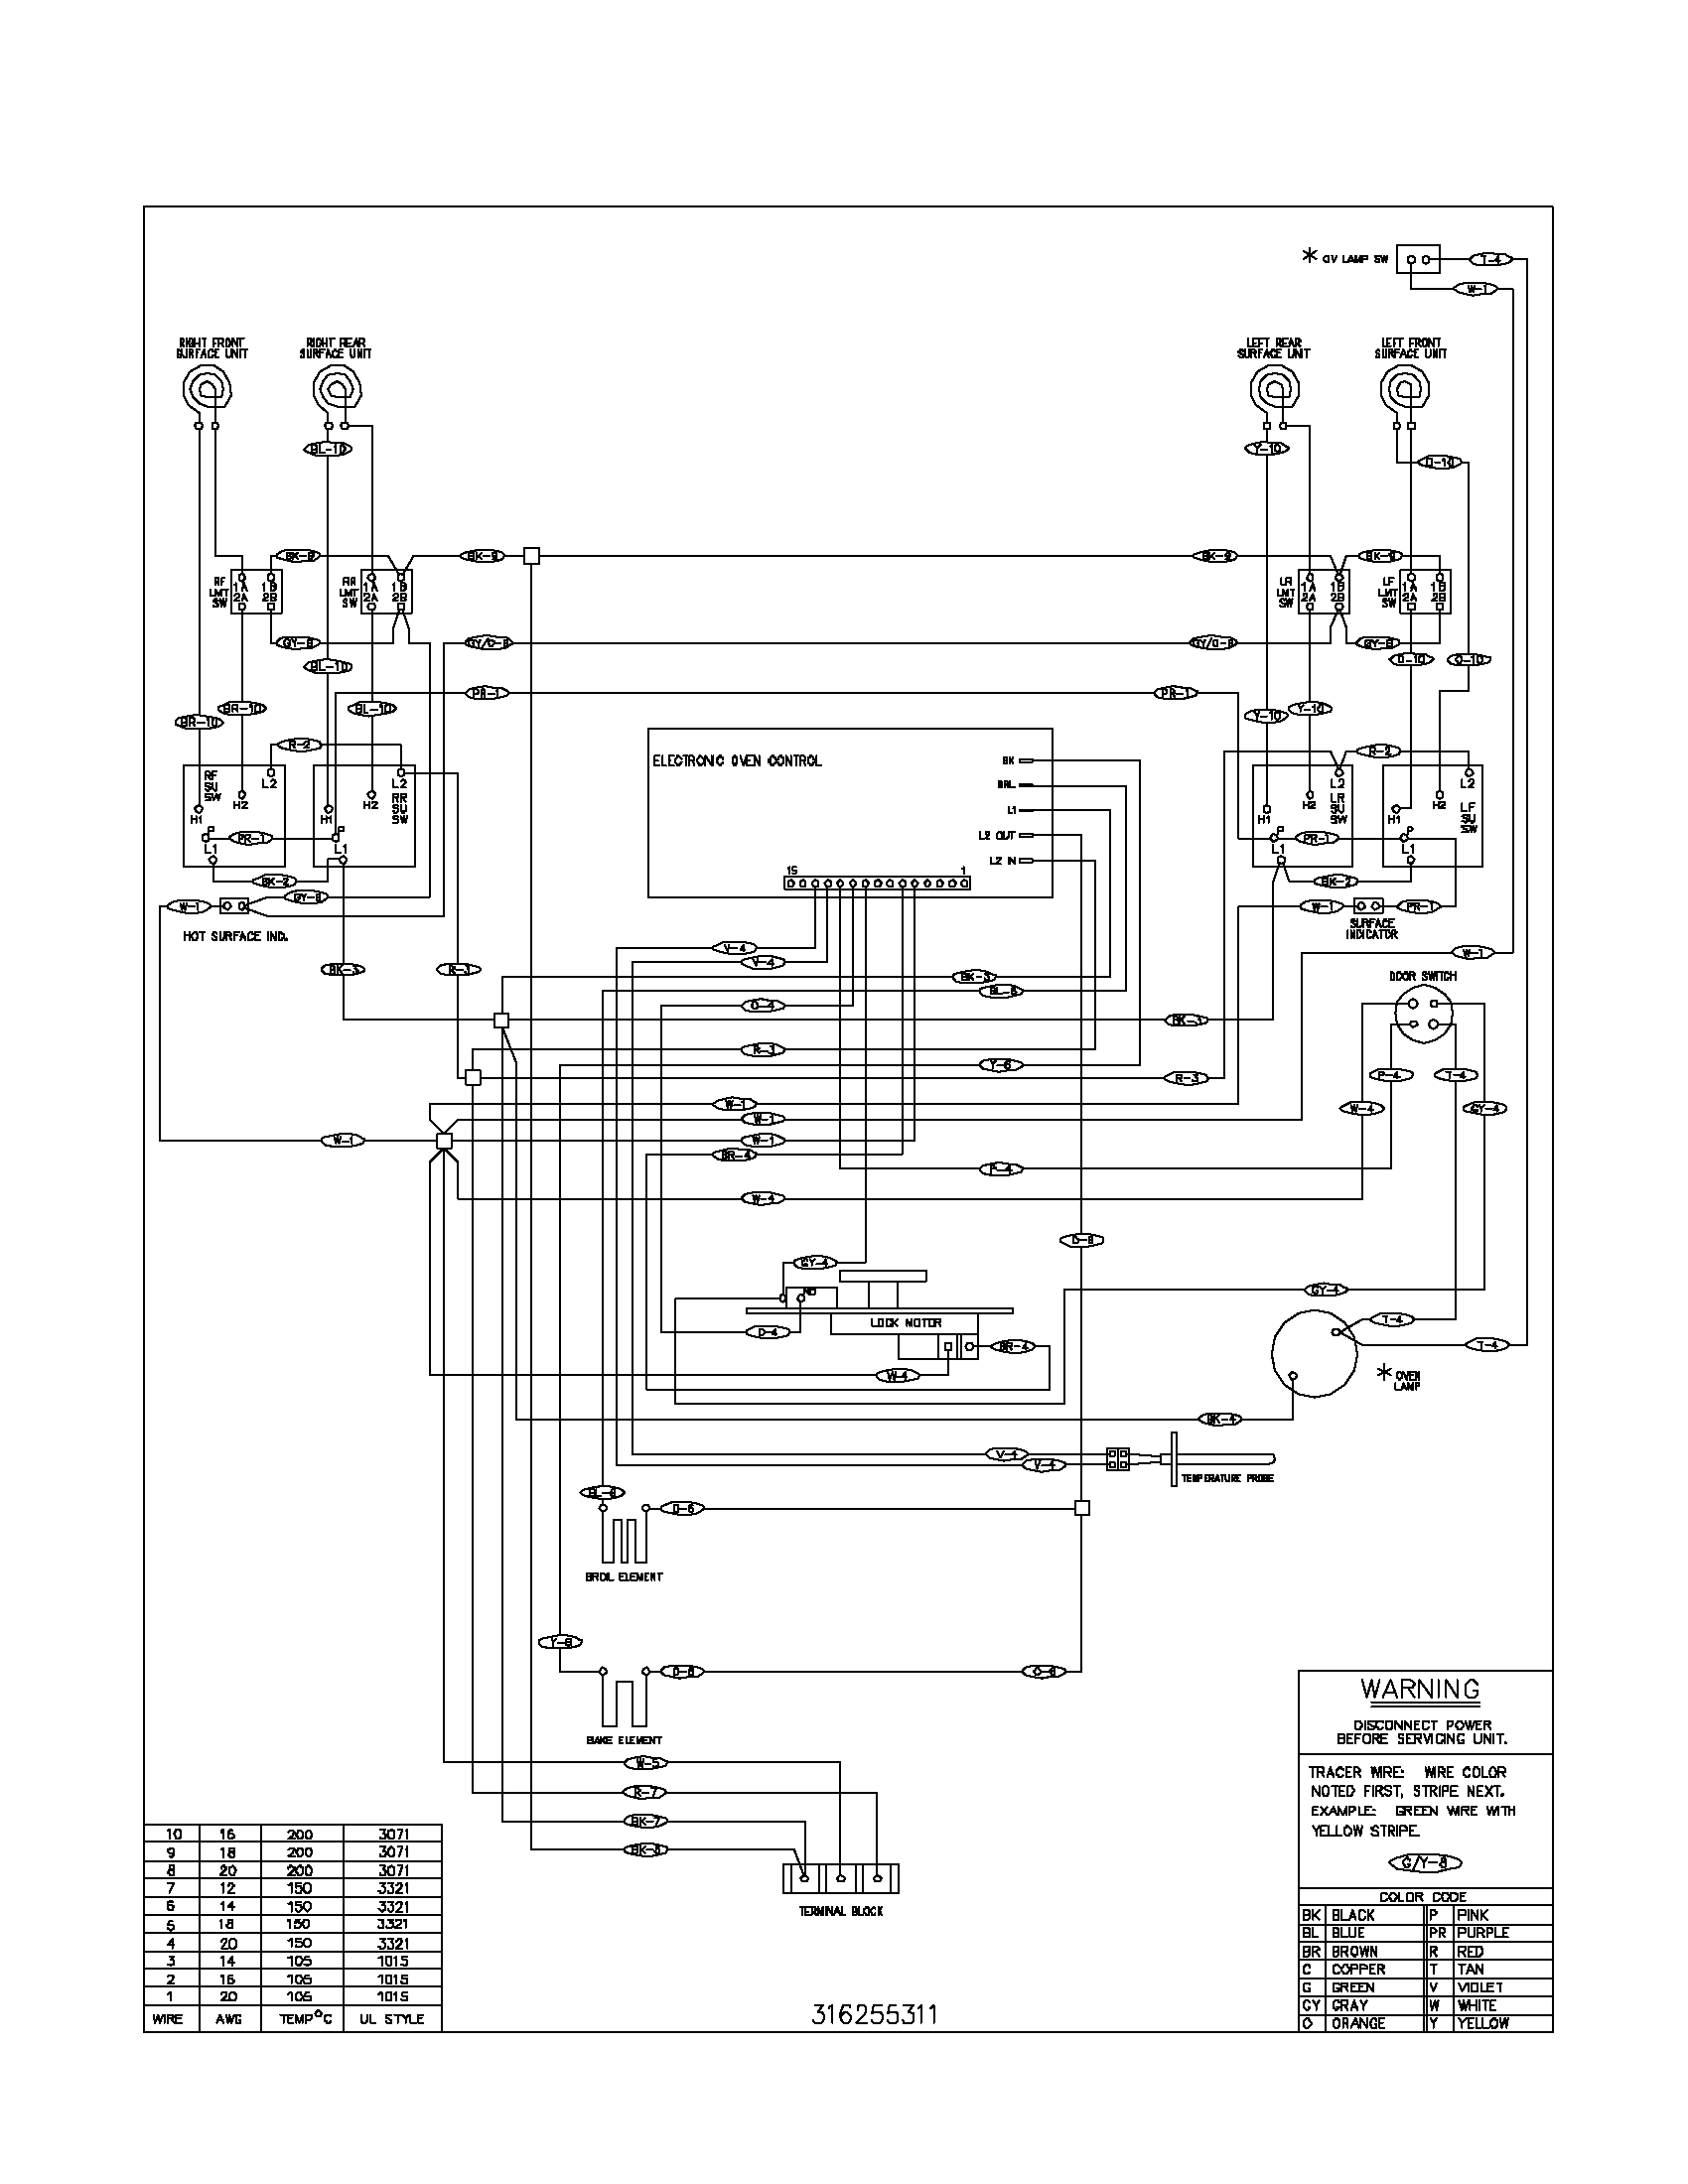 wiring diagram parts?resize\\\\\\\\\\\\\\\\\\\\\\\\\\\\\\\\\\\\\\\\\\\\\\\=665%2C861\\\\\\\\\\\\\\\\\\\\\\\\\\\\\\\\\\\\\\\\\\\\\\\&ssl\\\\\\\\\\\\\\\\\\\\\\\\\\\\\\\\\\\\\\\\\\\\\\\=1 rdx 755dz wiring diagram,dz \u2022 edmiracle co  at gsmportal.co